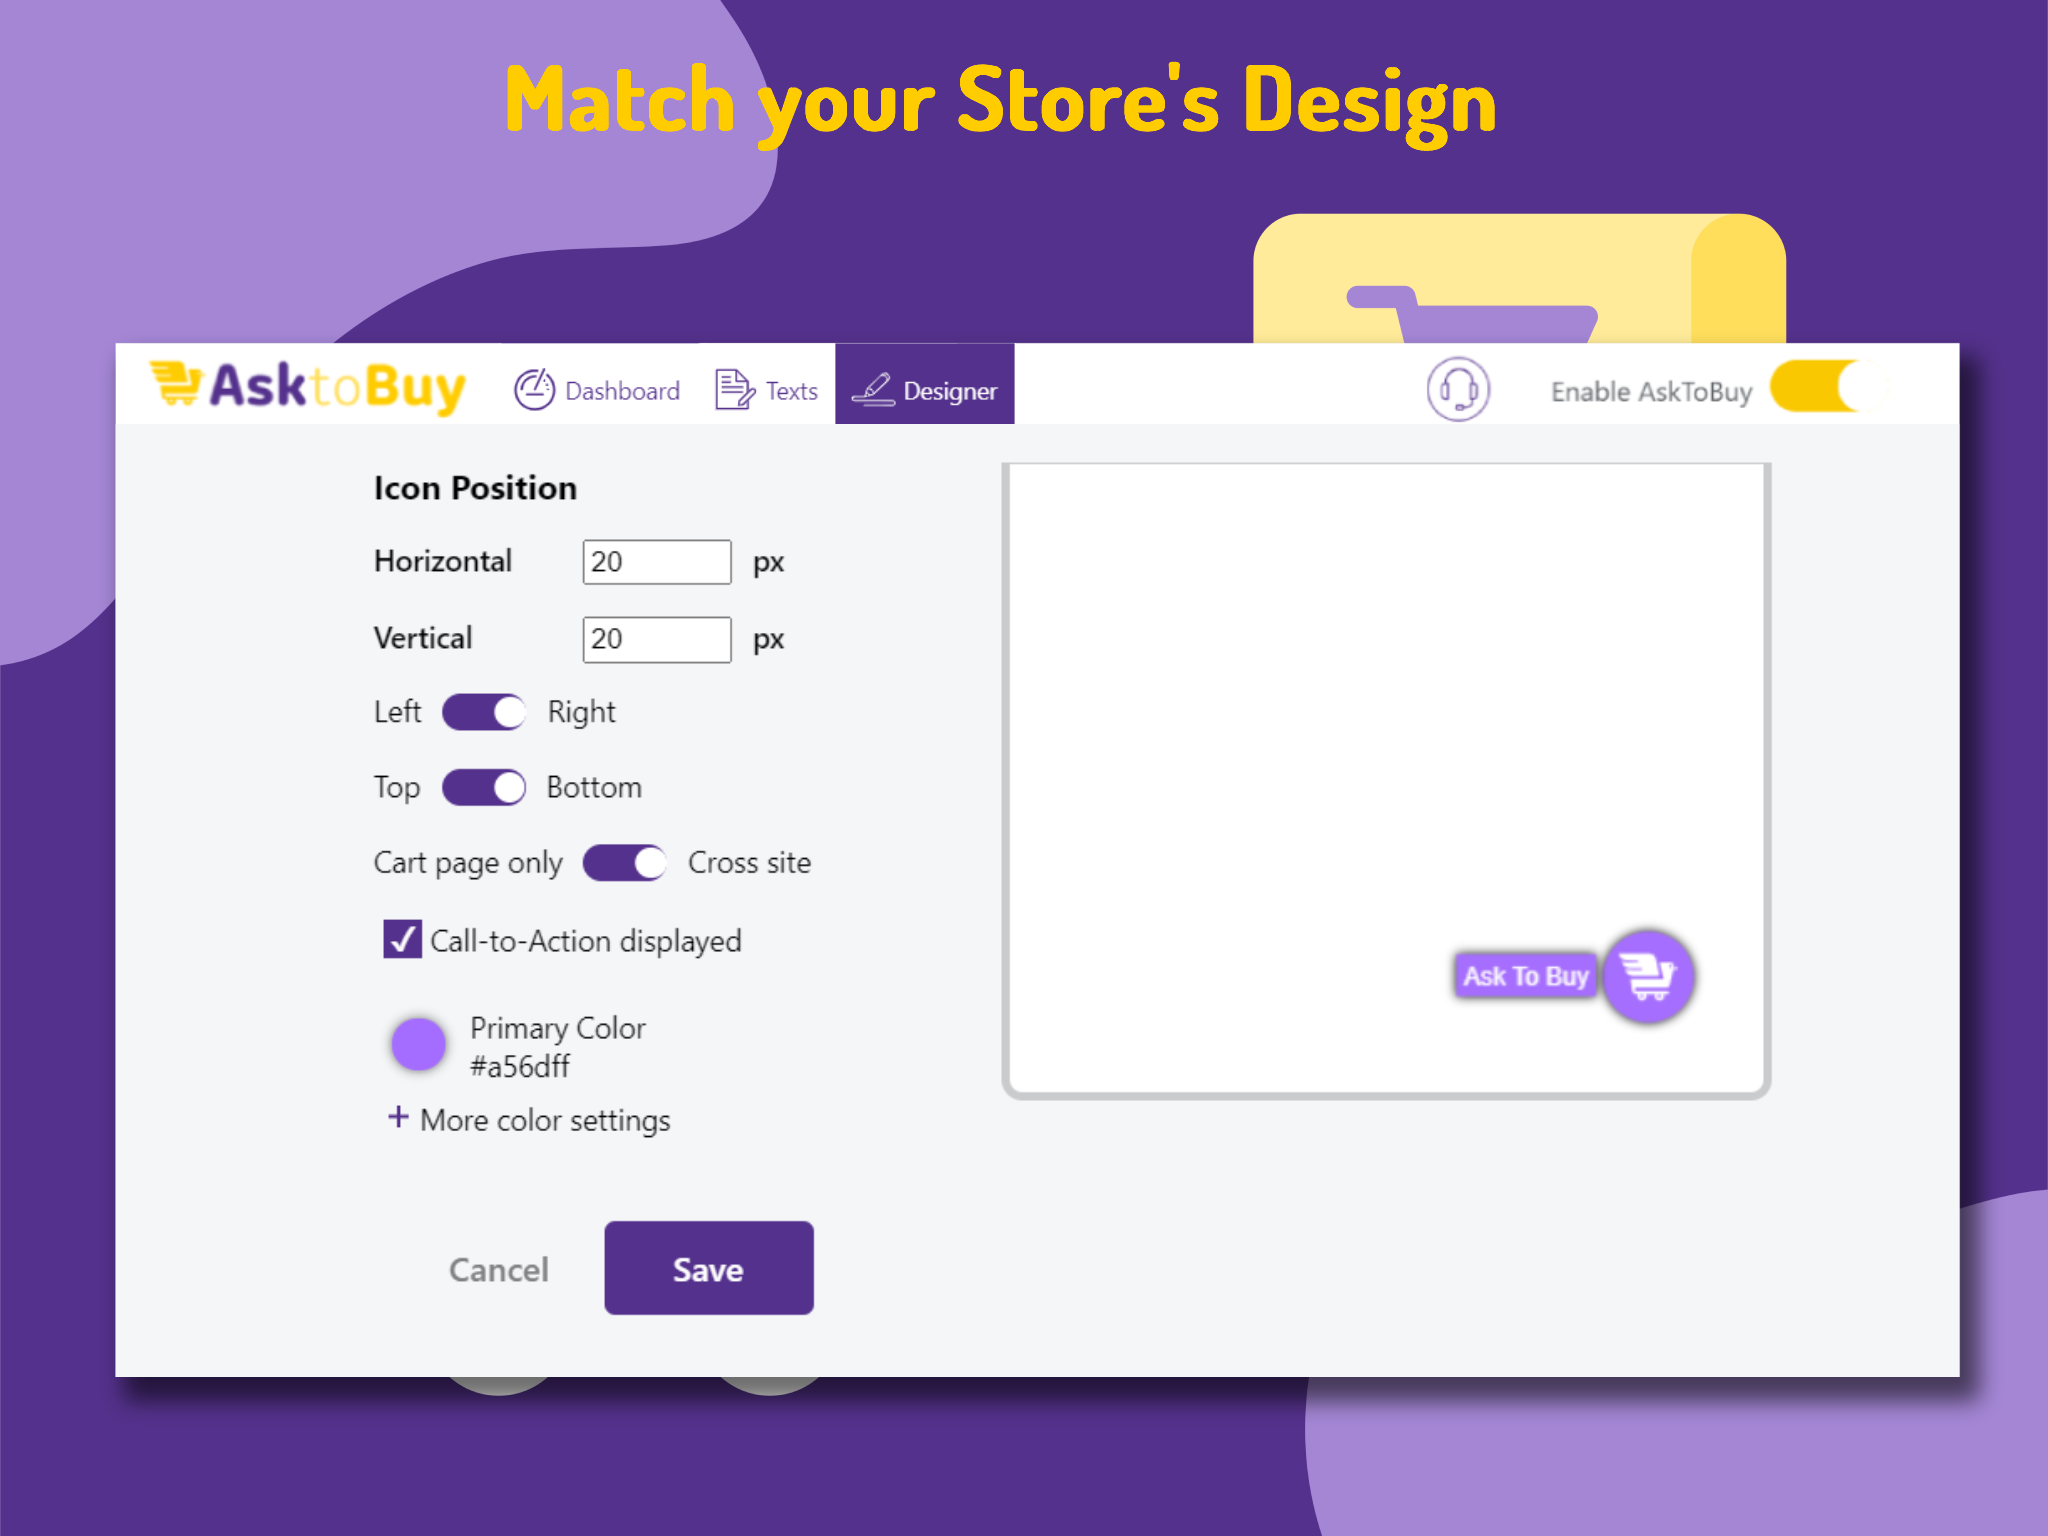 Change the design to match your store's. Edit Icon visibility.